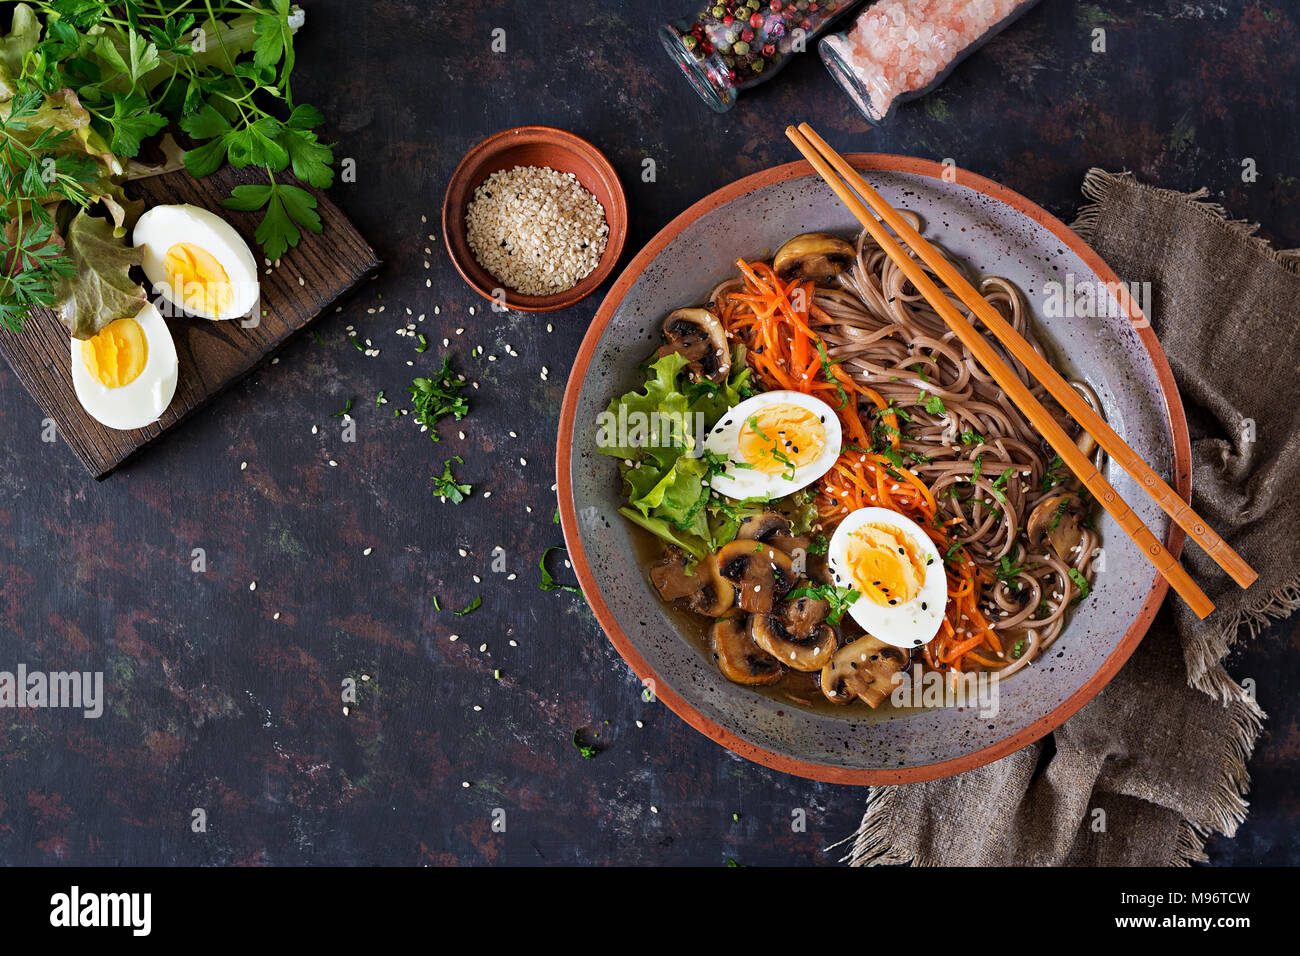 Japanese miso ramen noodles with eggs, carrot and mushrooms. Soup delicious food. Flat lay. Top view - Stock Image